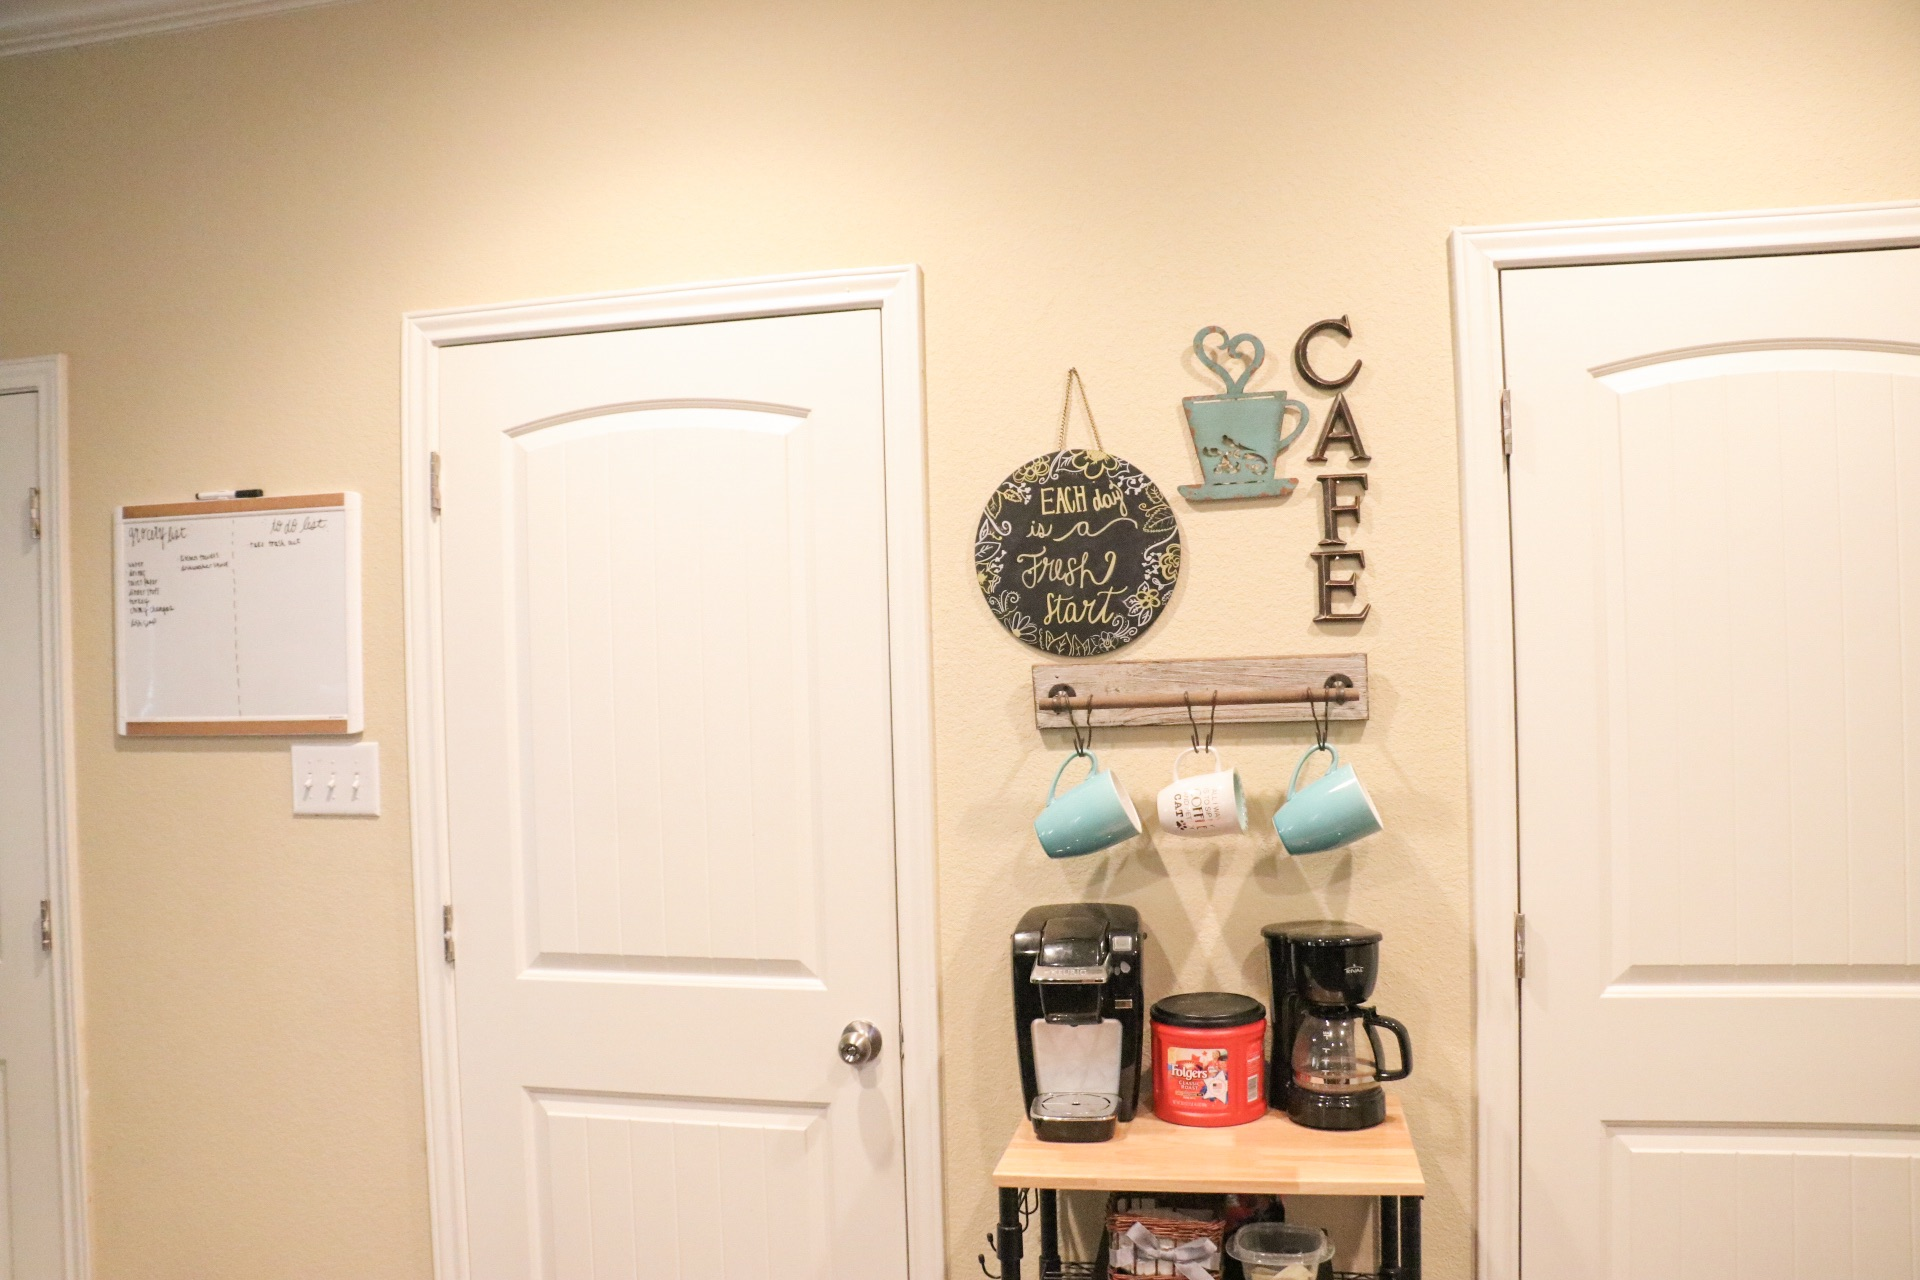 In our kitchen area, we made this cute little coffee bar! We got the stand from WalMart, the coffee cup holder from Hobby Lobby, the chalkboard from Target and the cafe and coffee decor from Hobby Lobby!